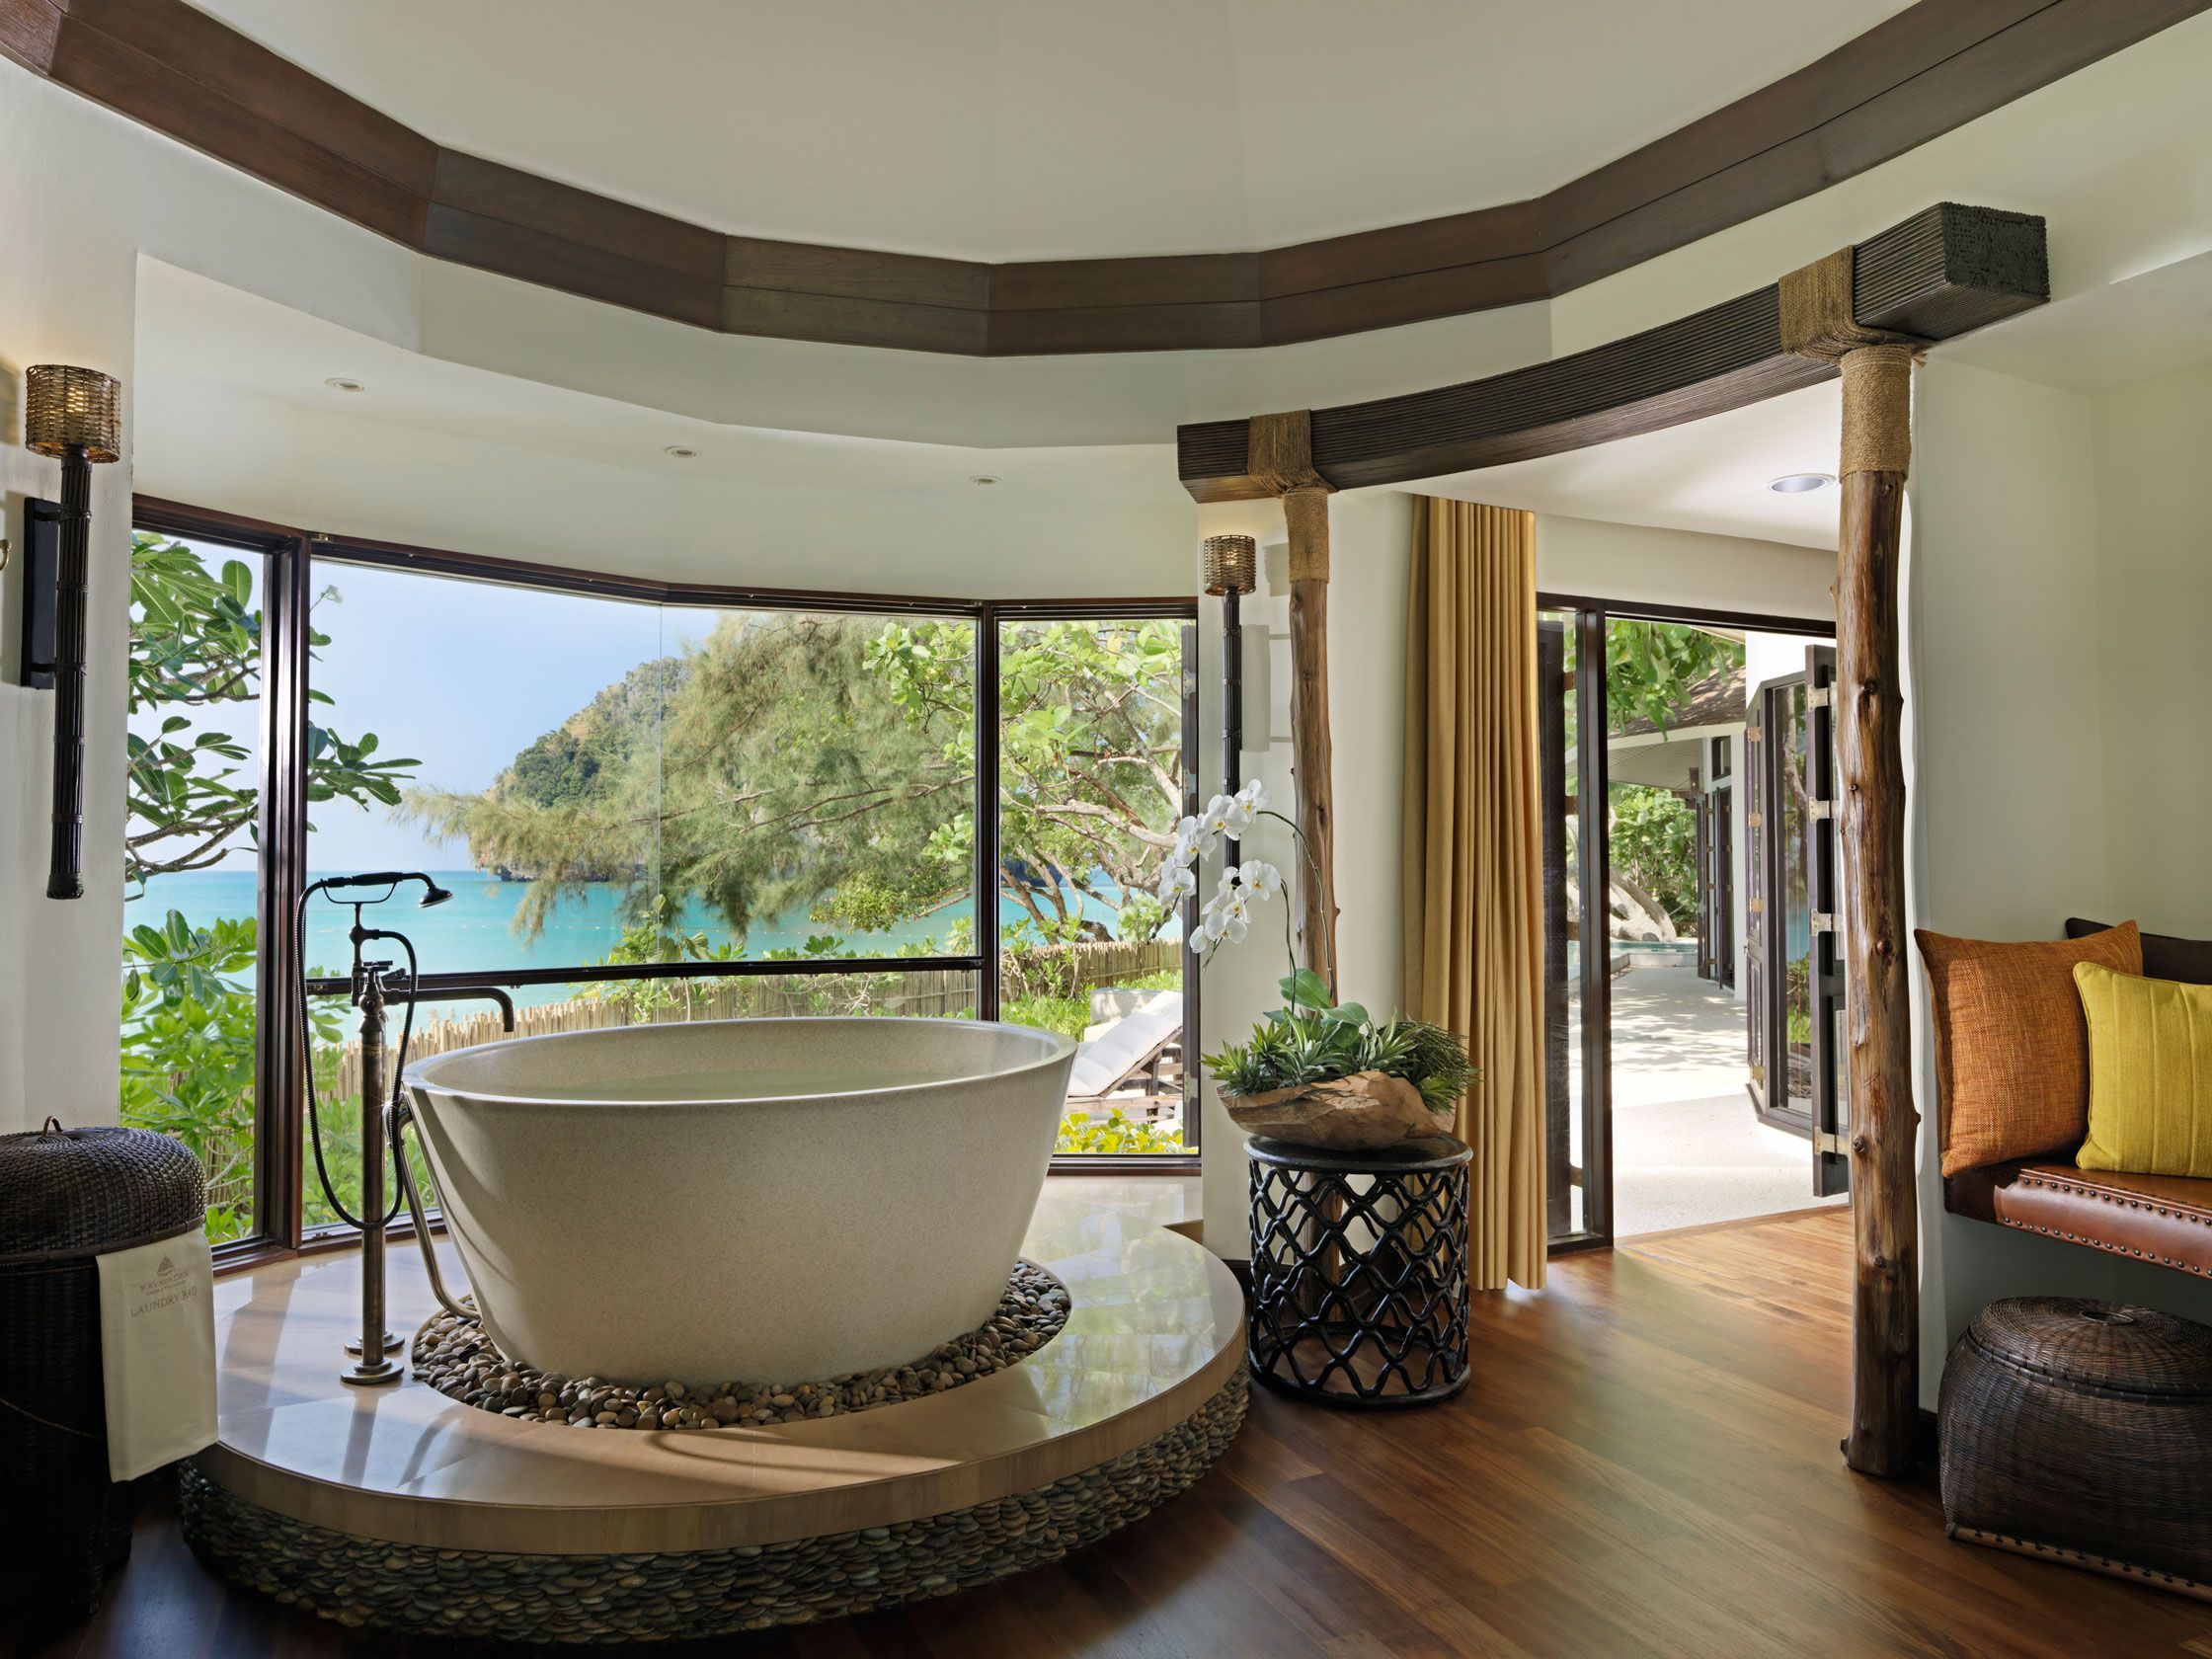 The Rayavadee Villa Master Suite Bathroom